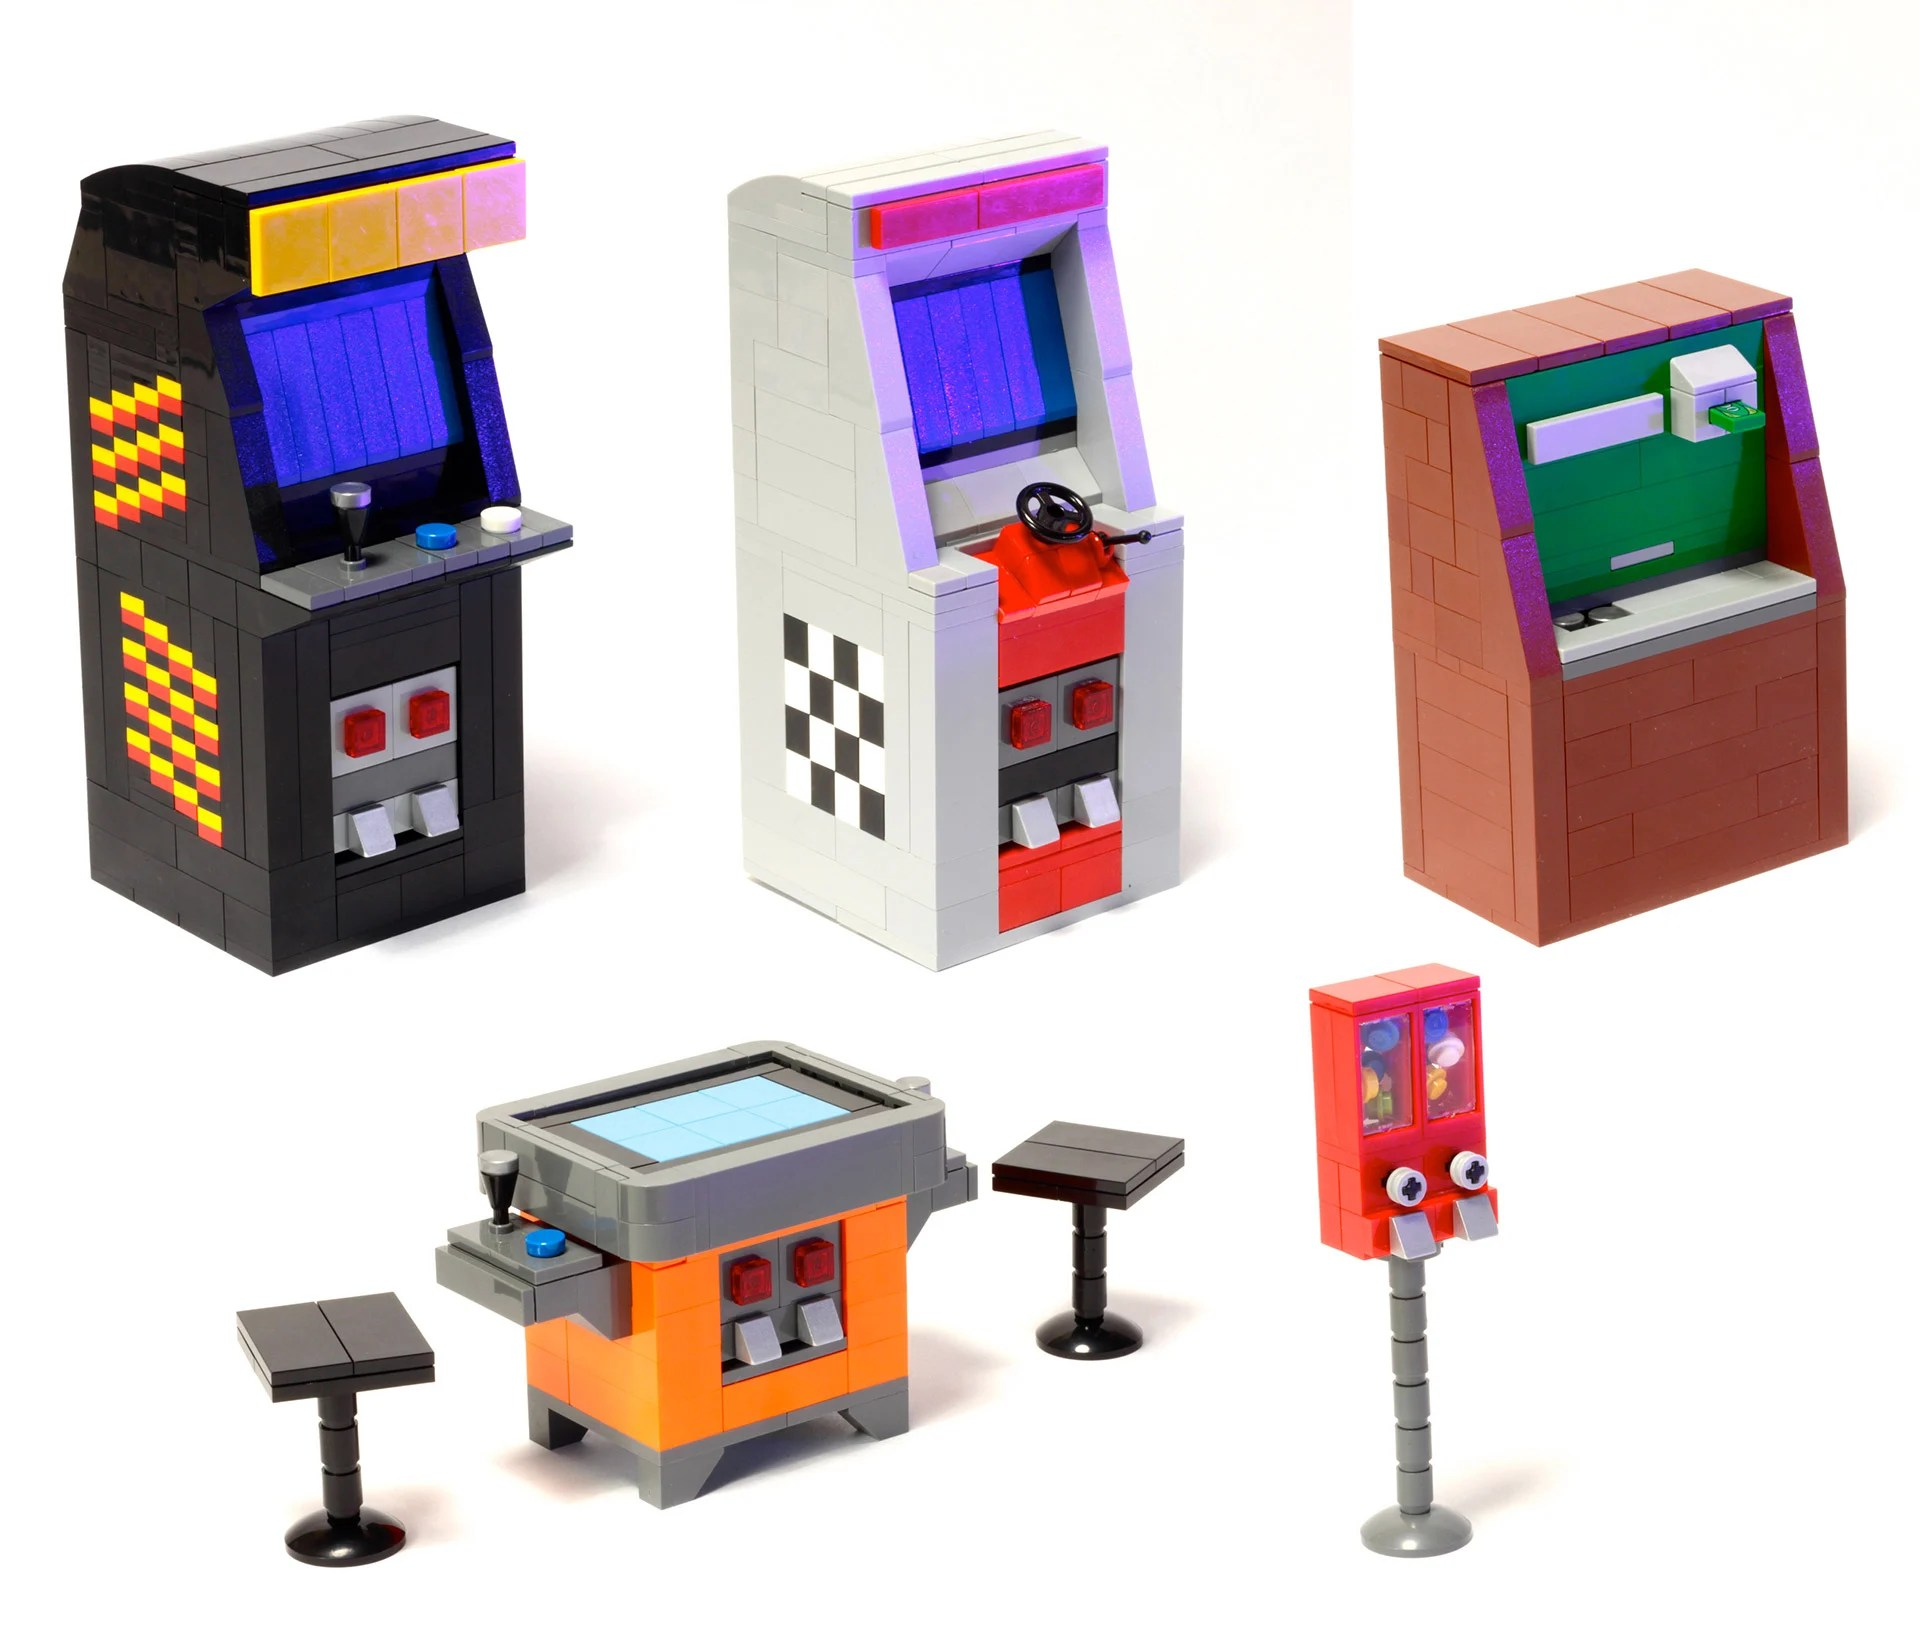 Cool Machines To Build Tiny Lego Arcade Cabinets Hit Lego Ideas Technabob